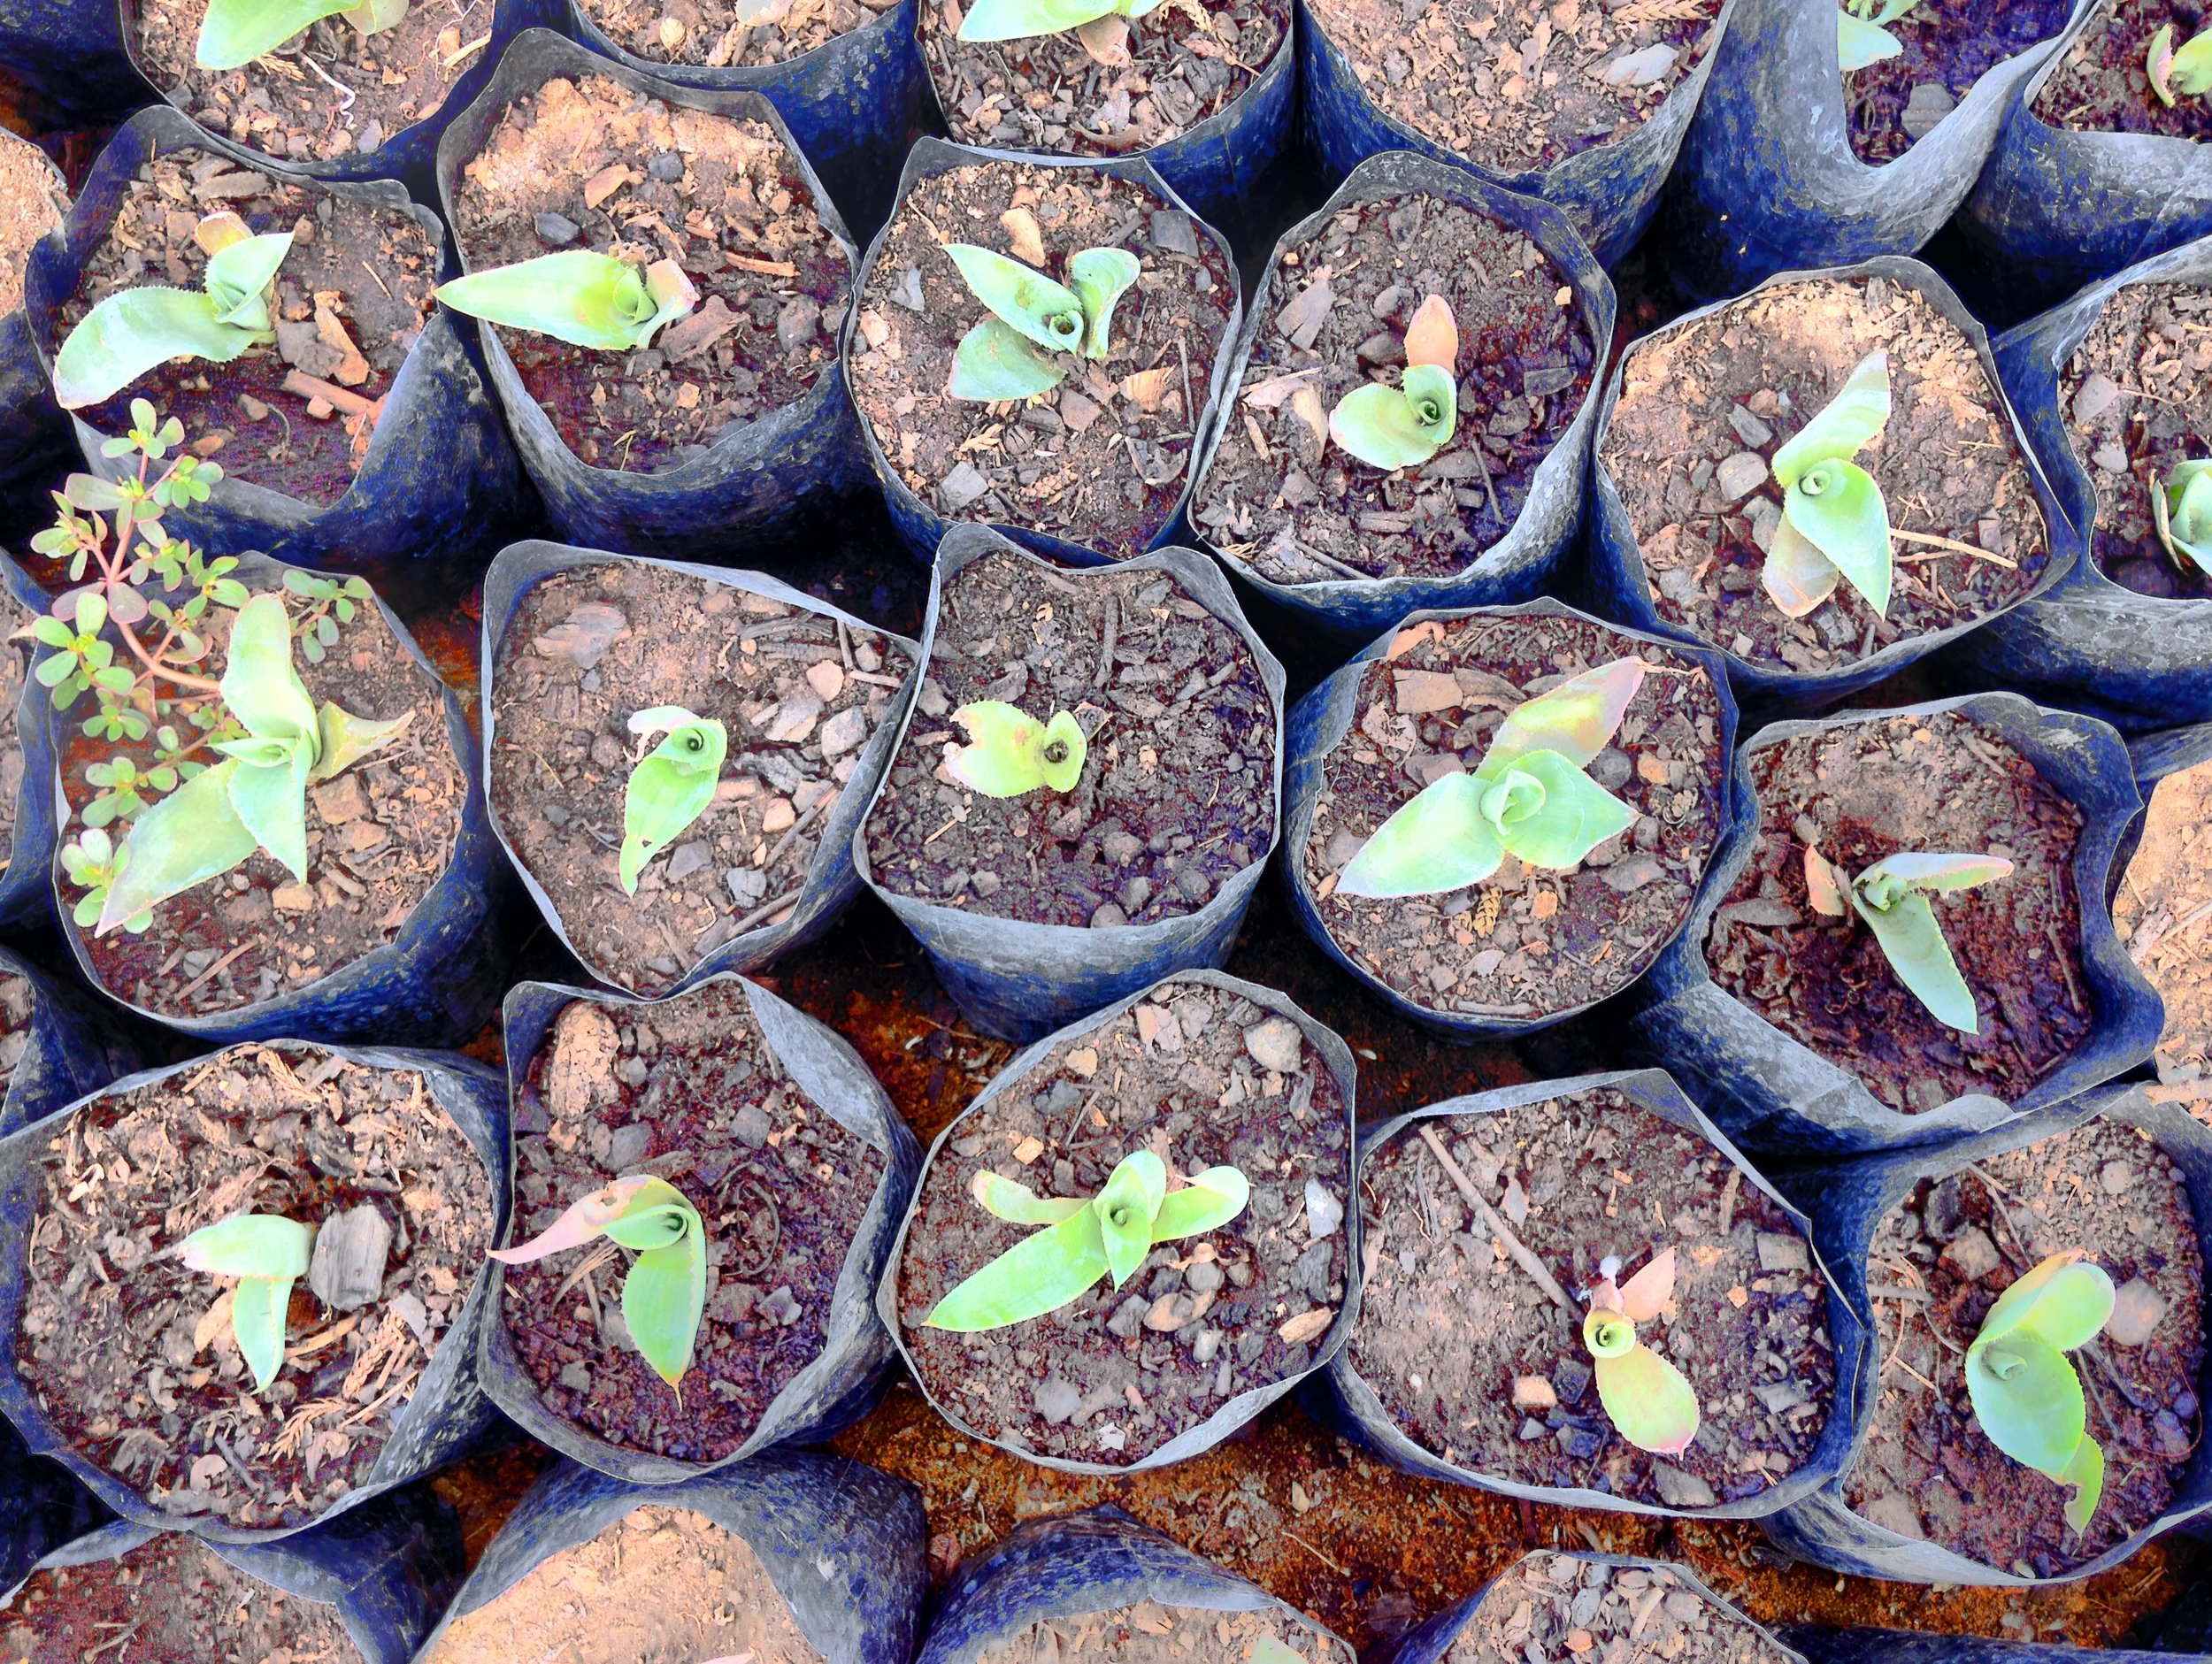 Agave babies grown from seed by the students of Telesecundaria El Manantial in Zaachila, Oaxaca